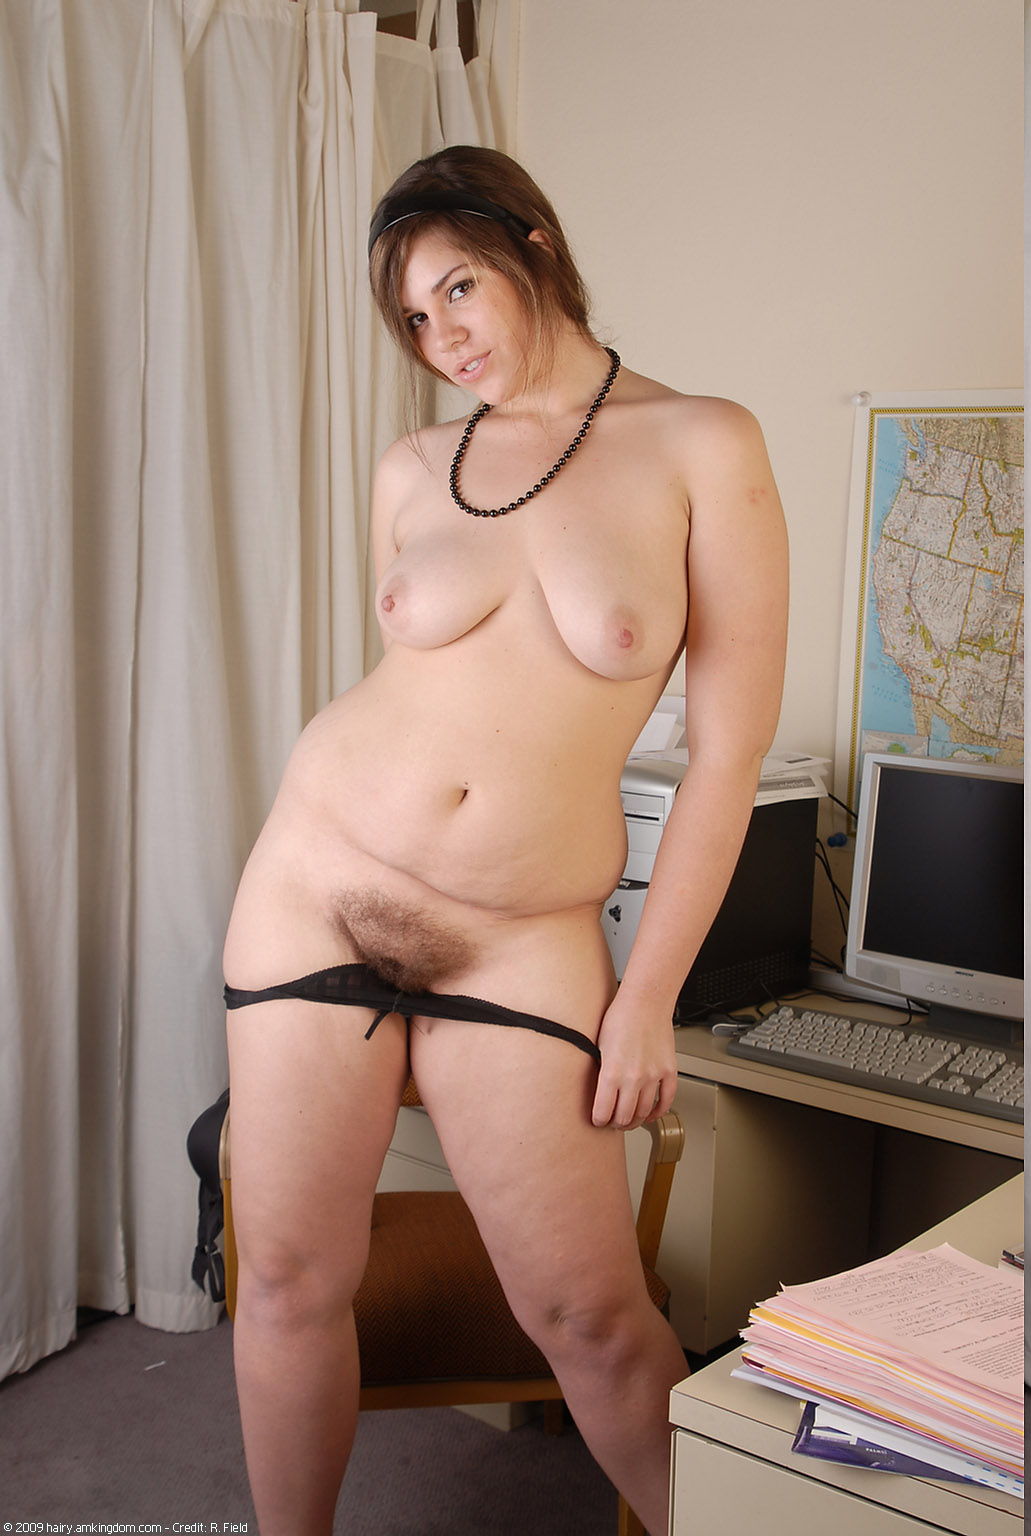 Hot Teen In A Tjoung